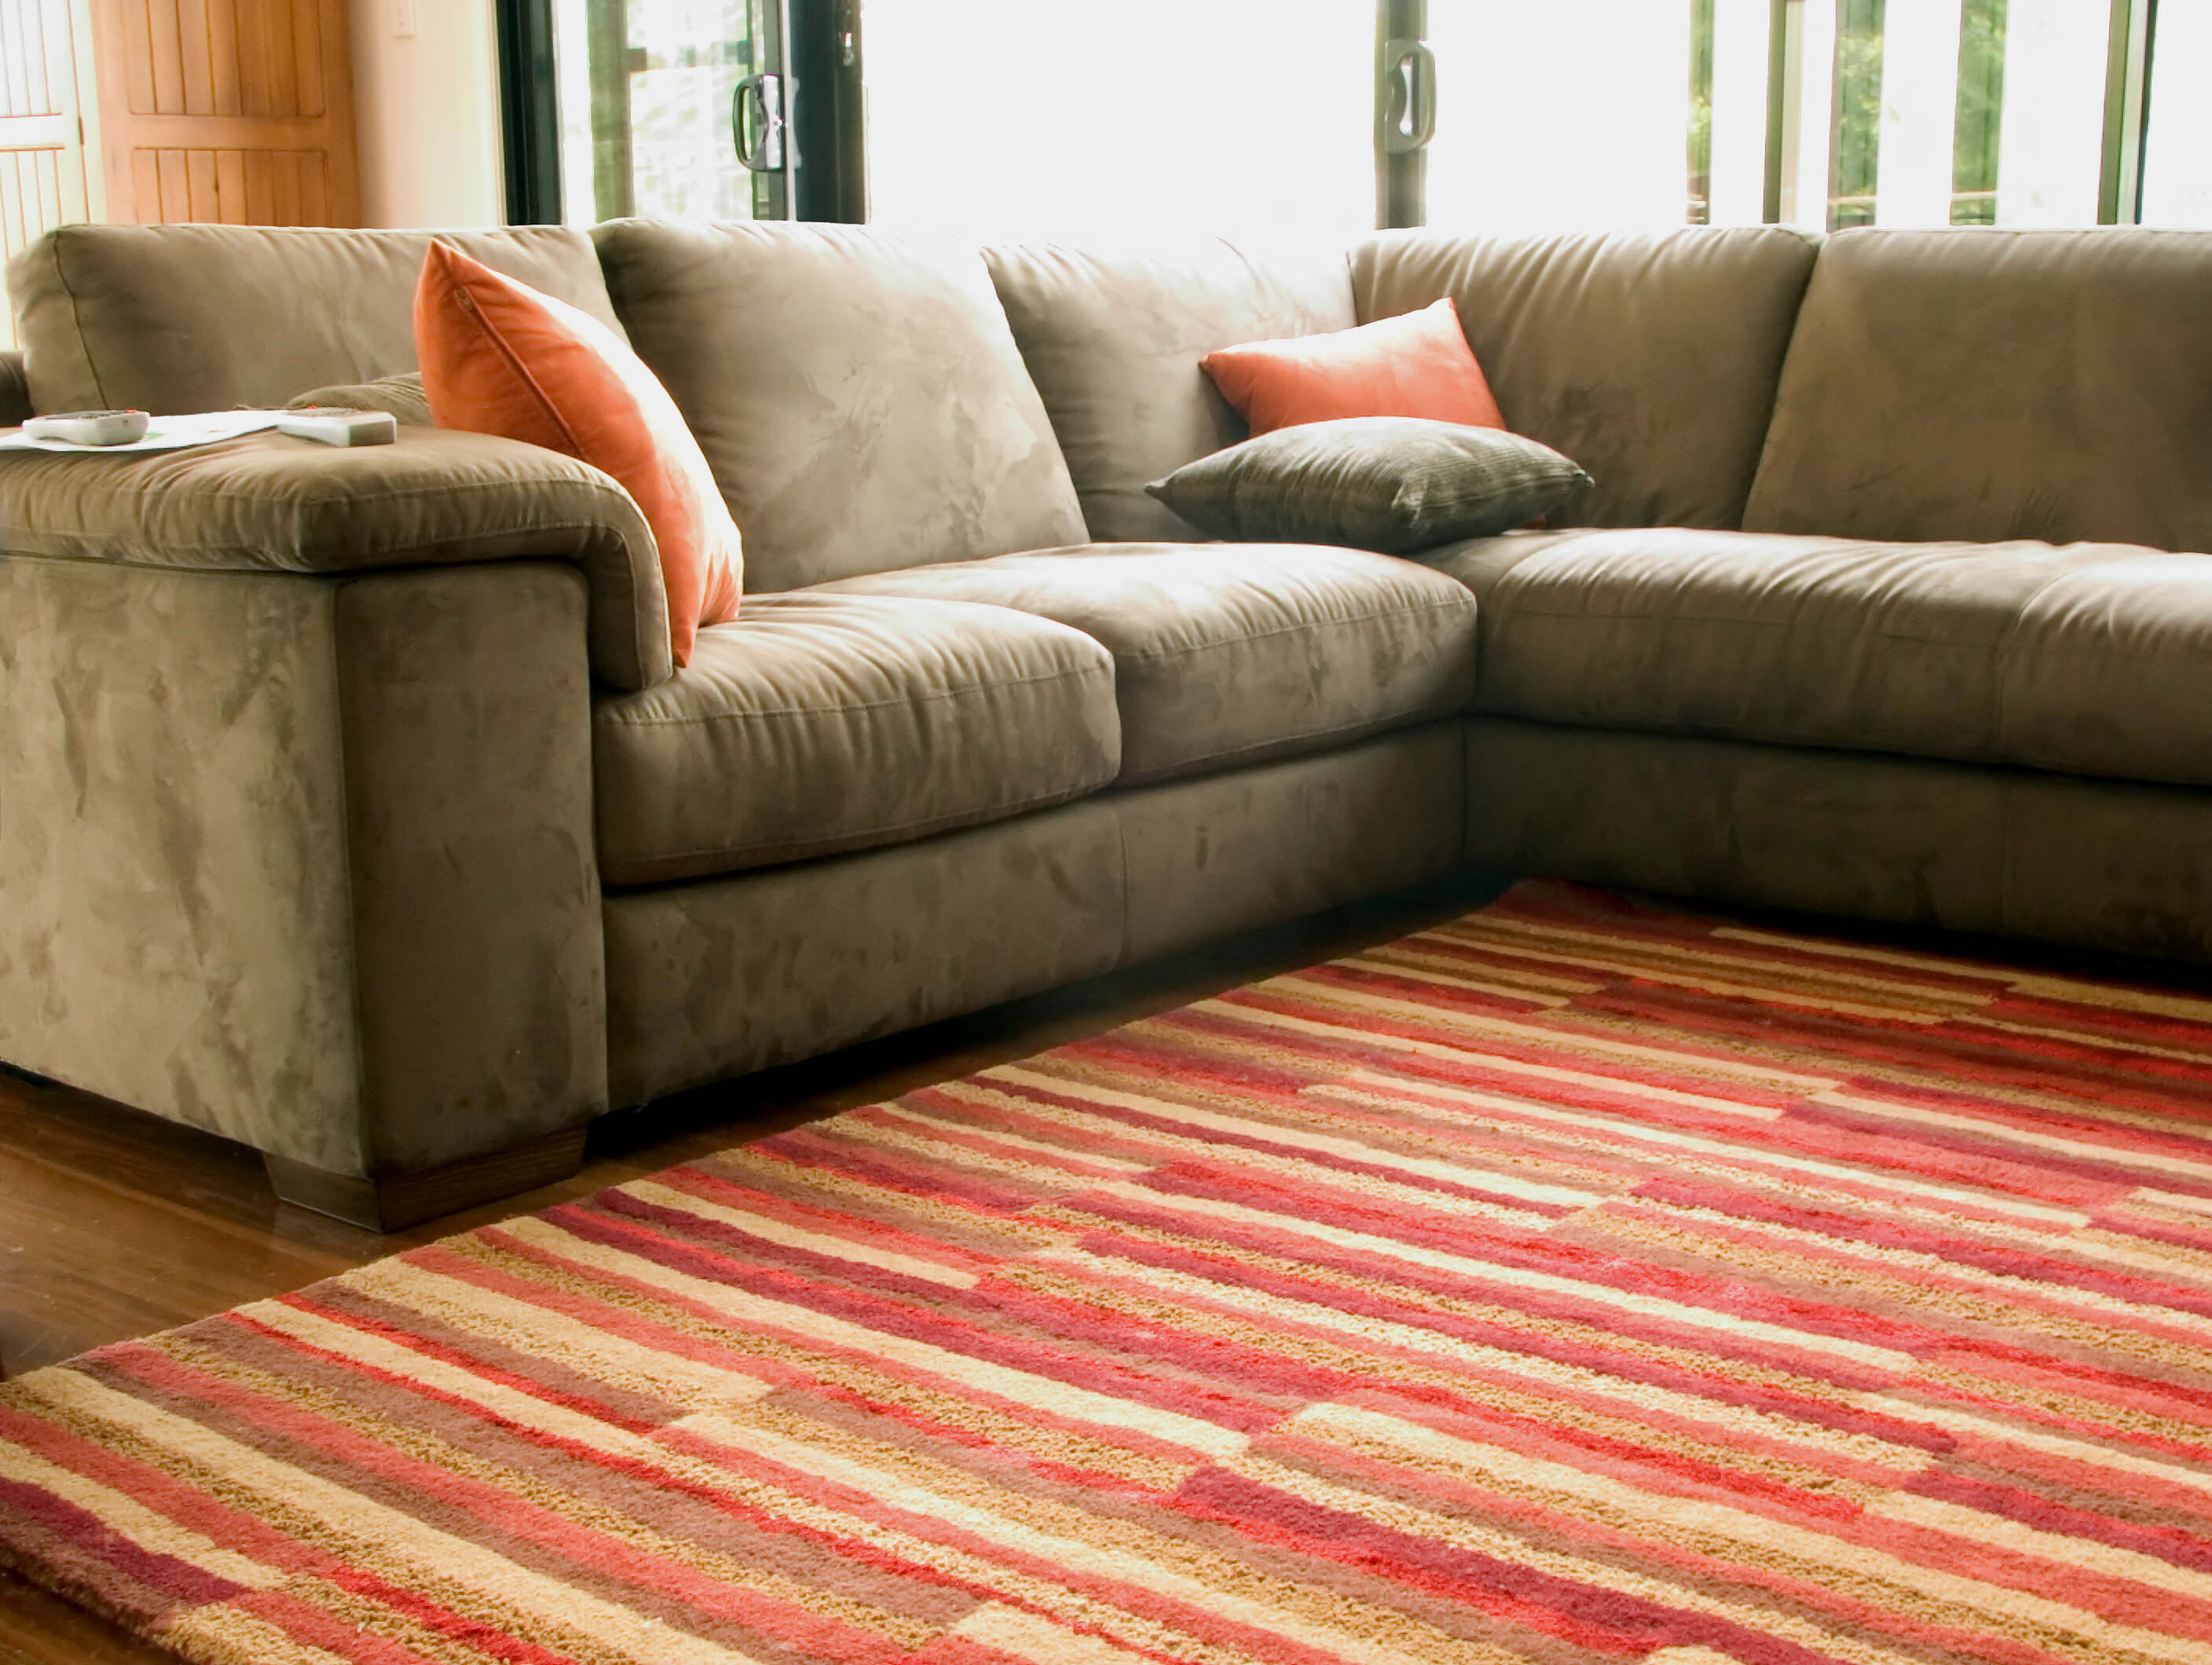 Useful area rug tips for your small living space blog for Can you put an area rug on carpet